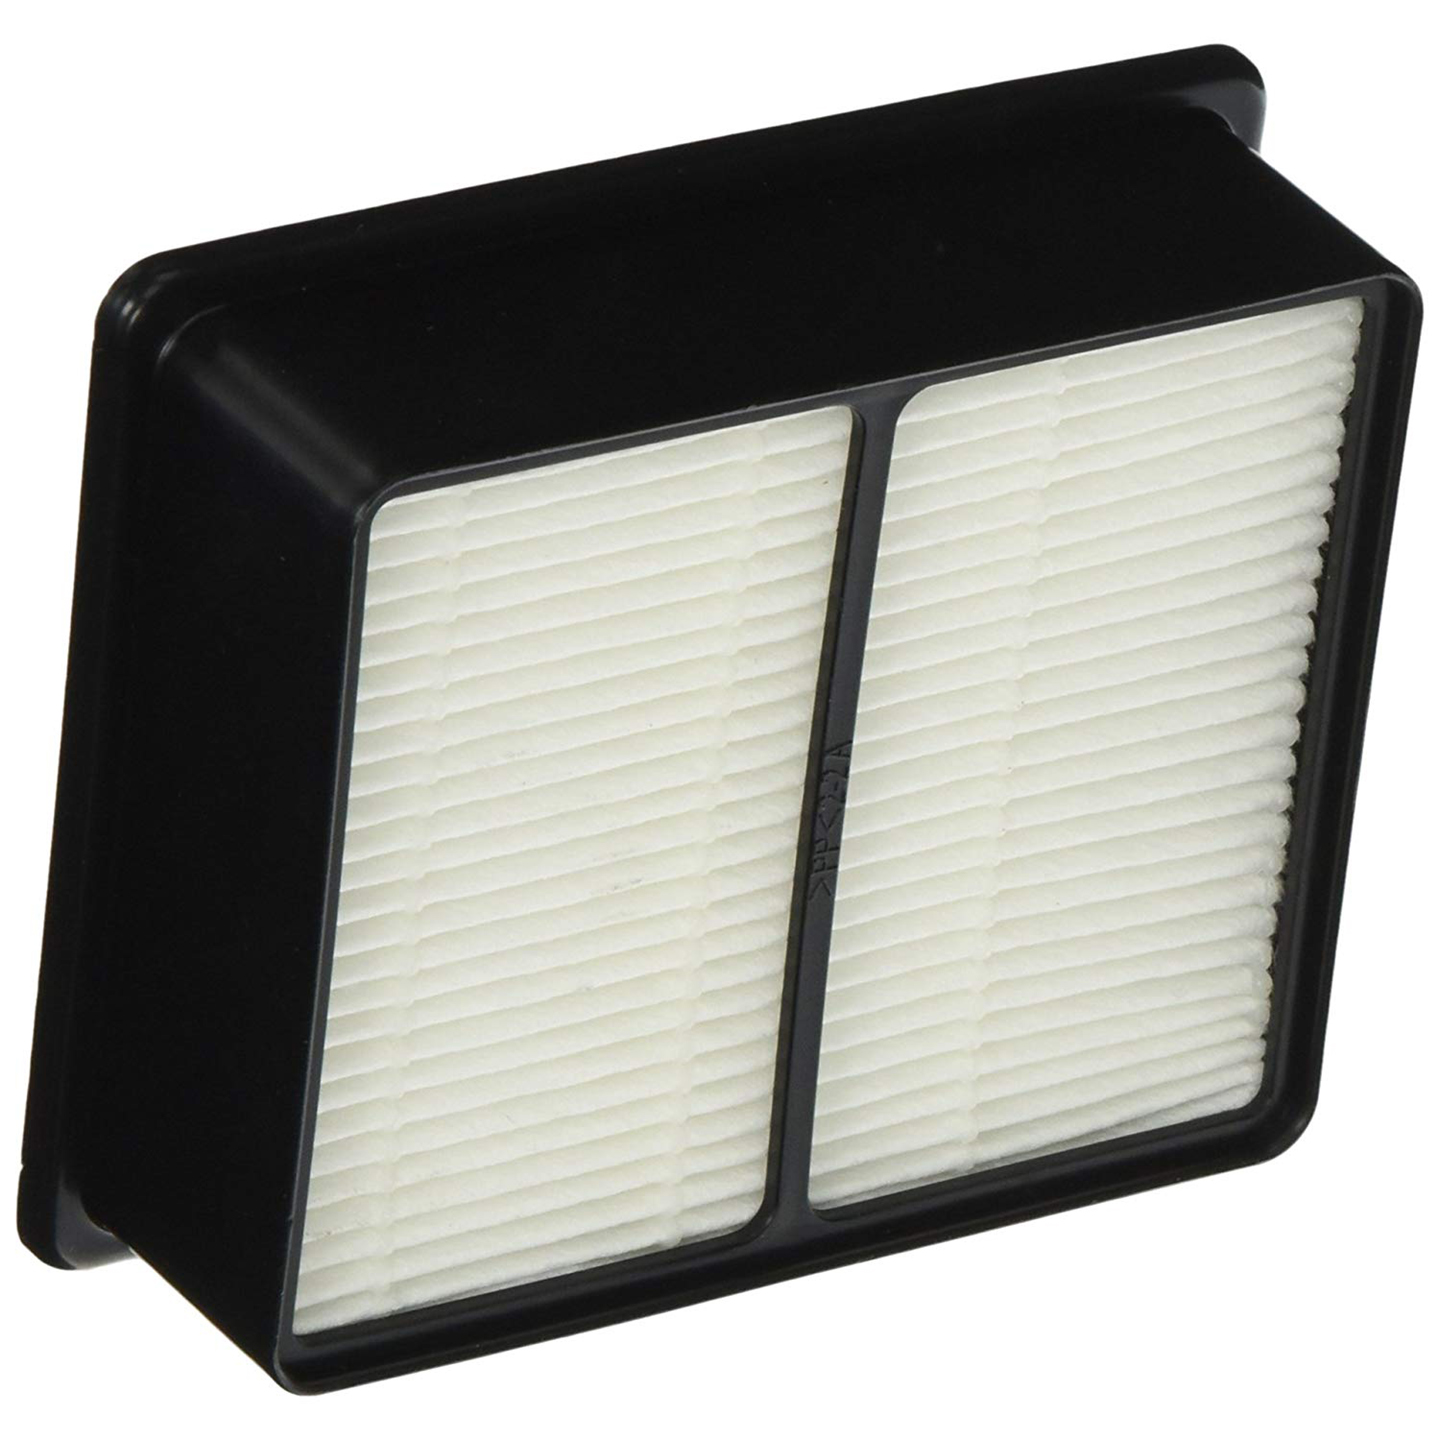 Dirt Devil UD-70115 Upright Type F-71 Hepa Filter With Foam Part # 440002674